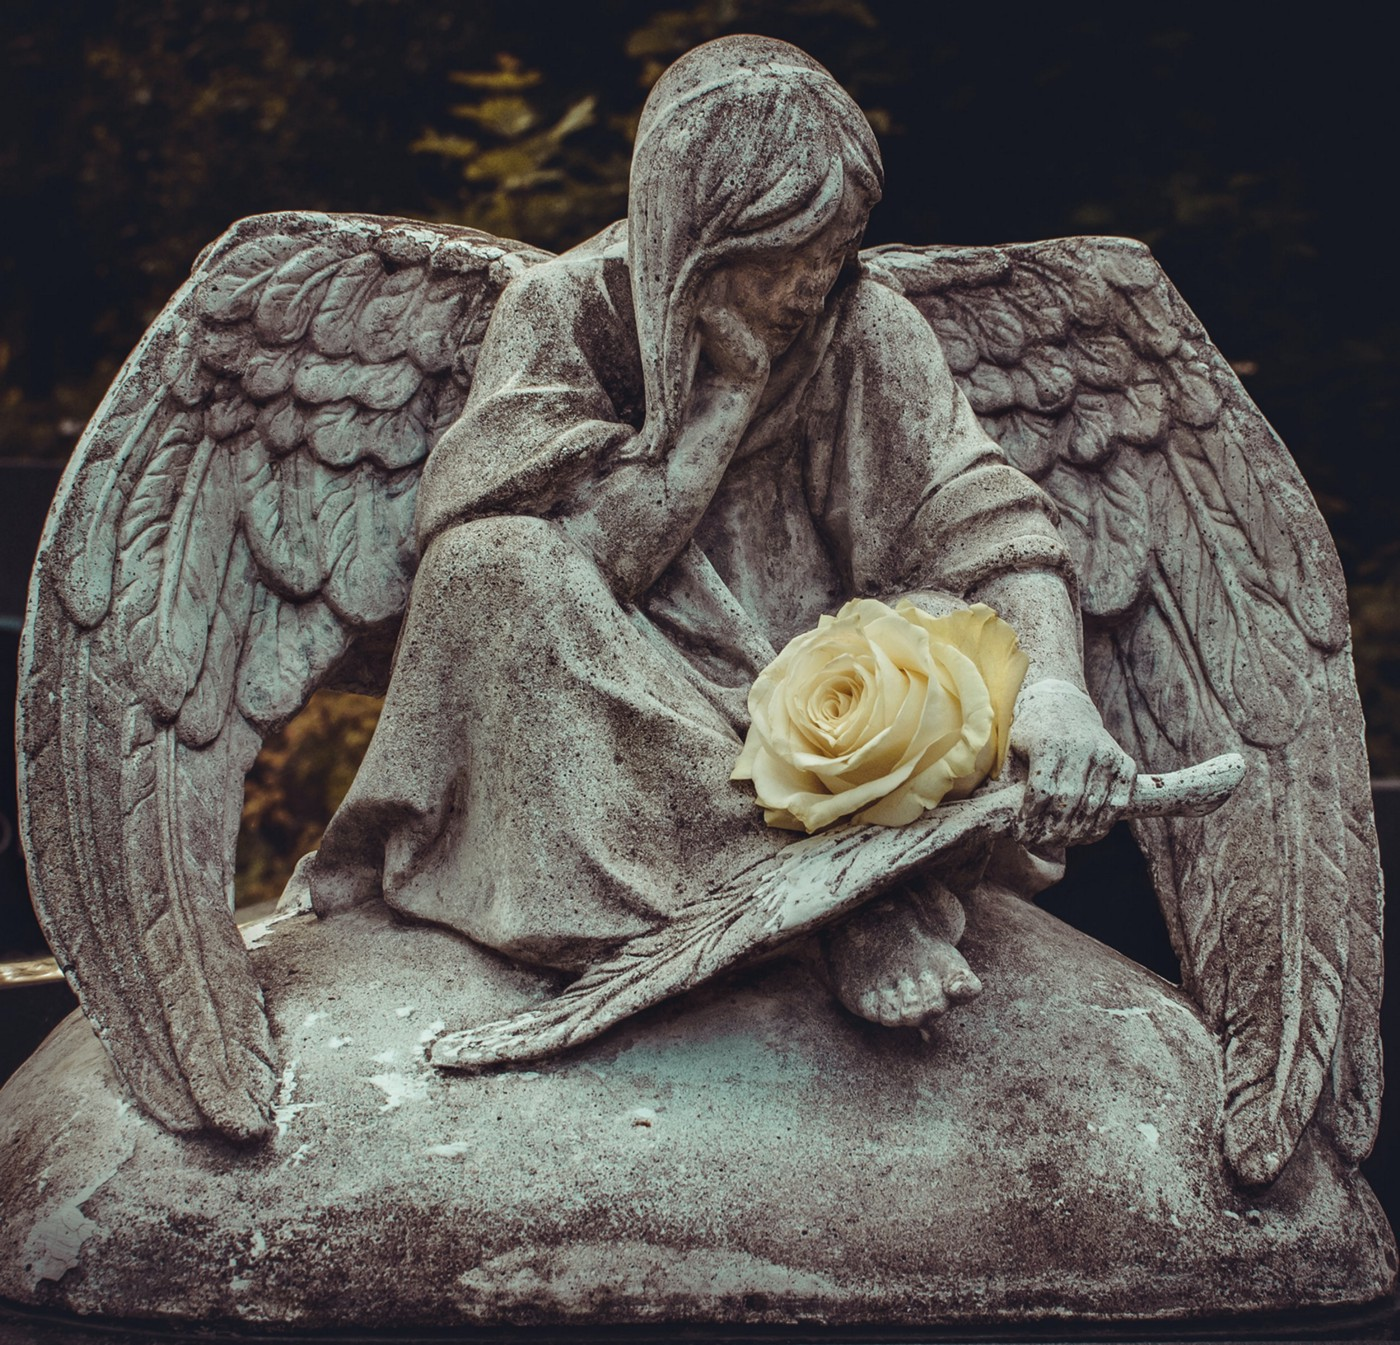 A statue of a seated angel in a cemetery holds a single white rose.